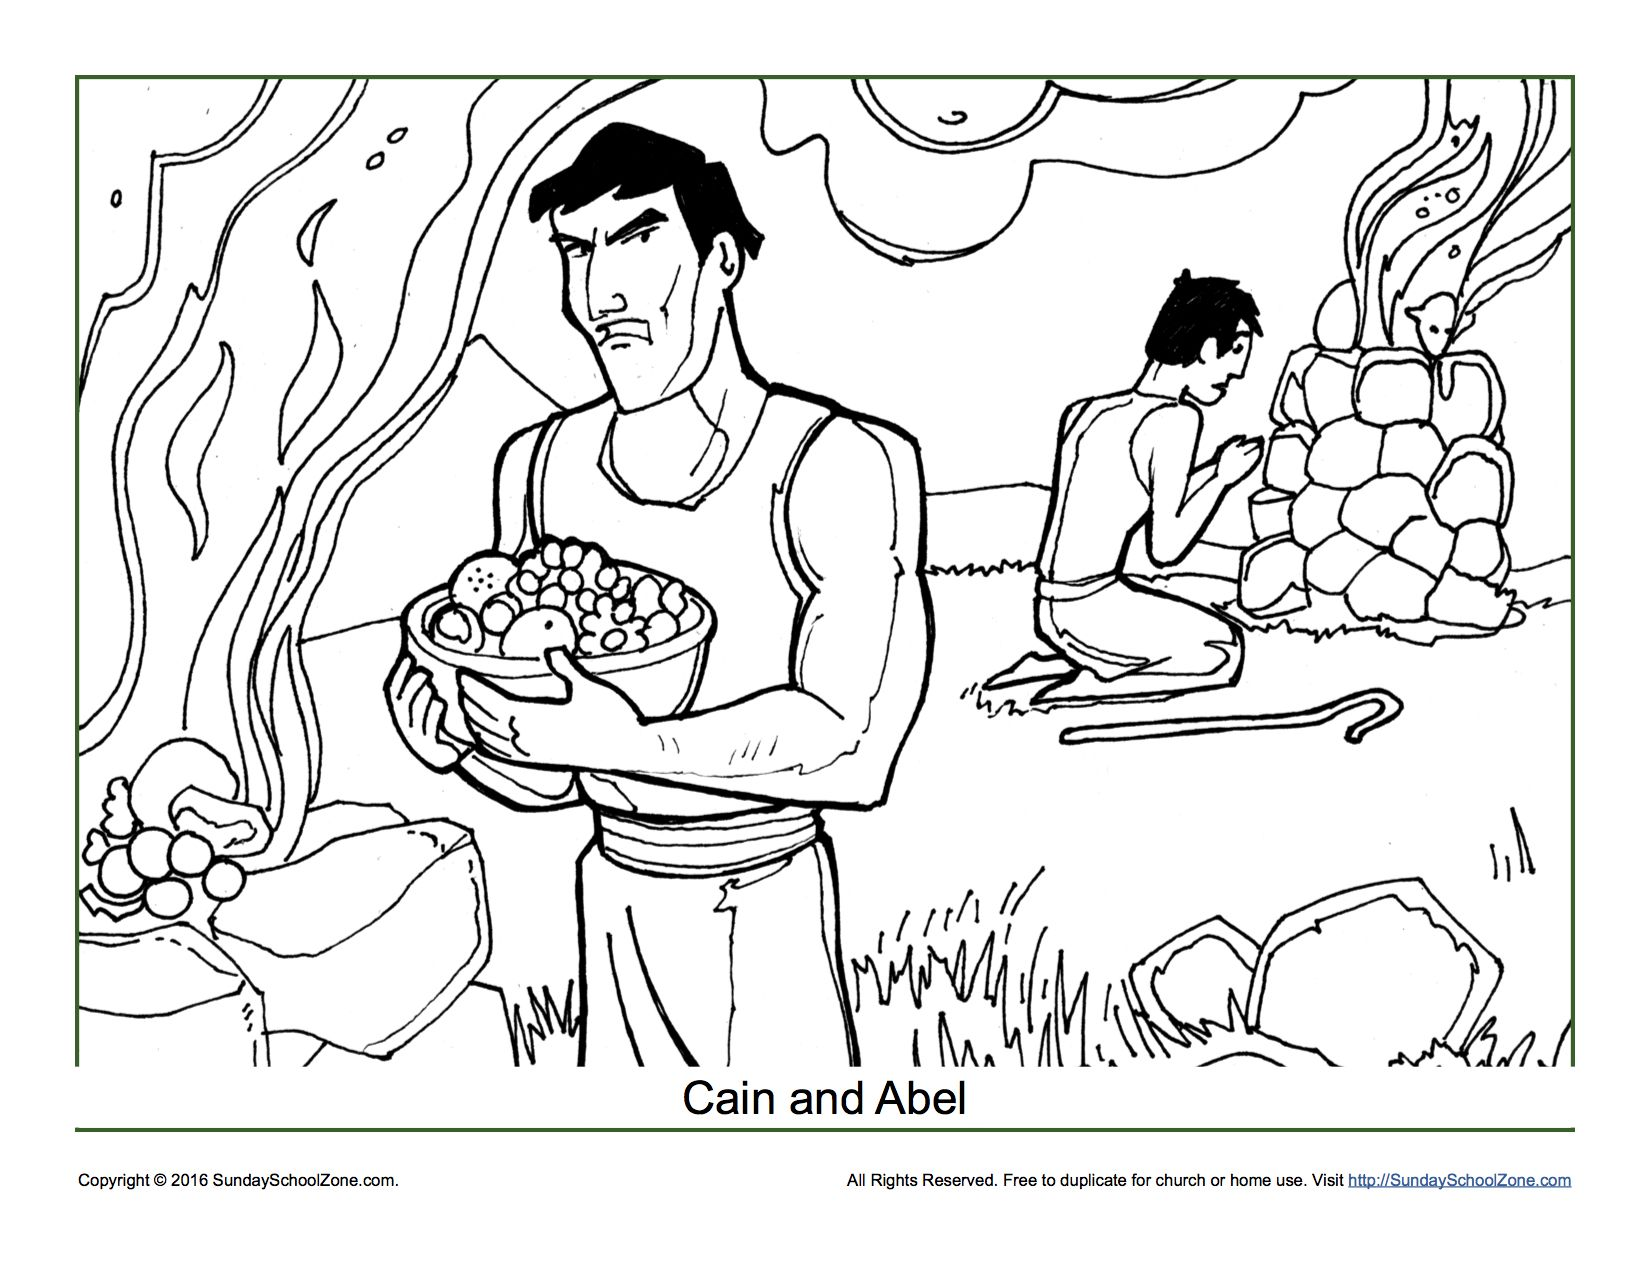 Cain and Abel Coloring Page | Sunday school, Bible activities and ...